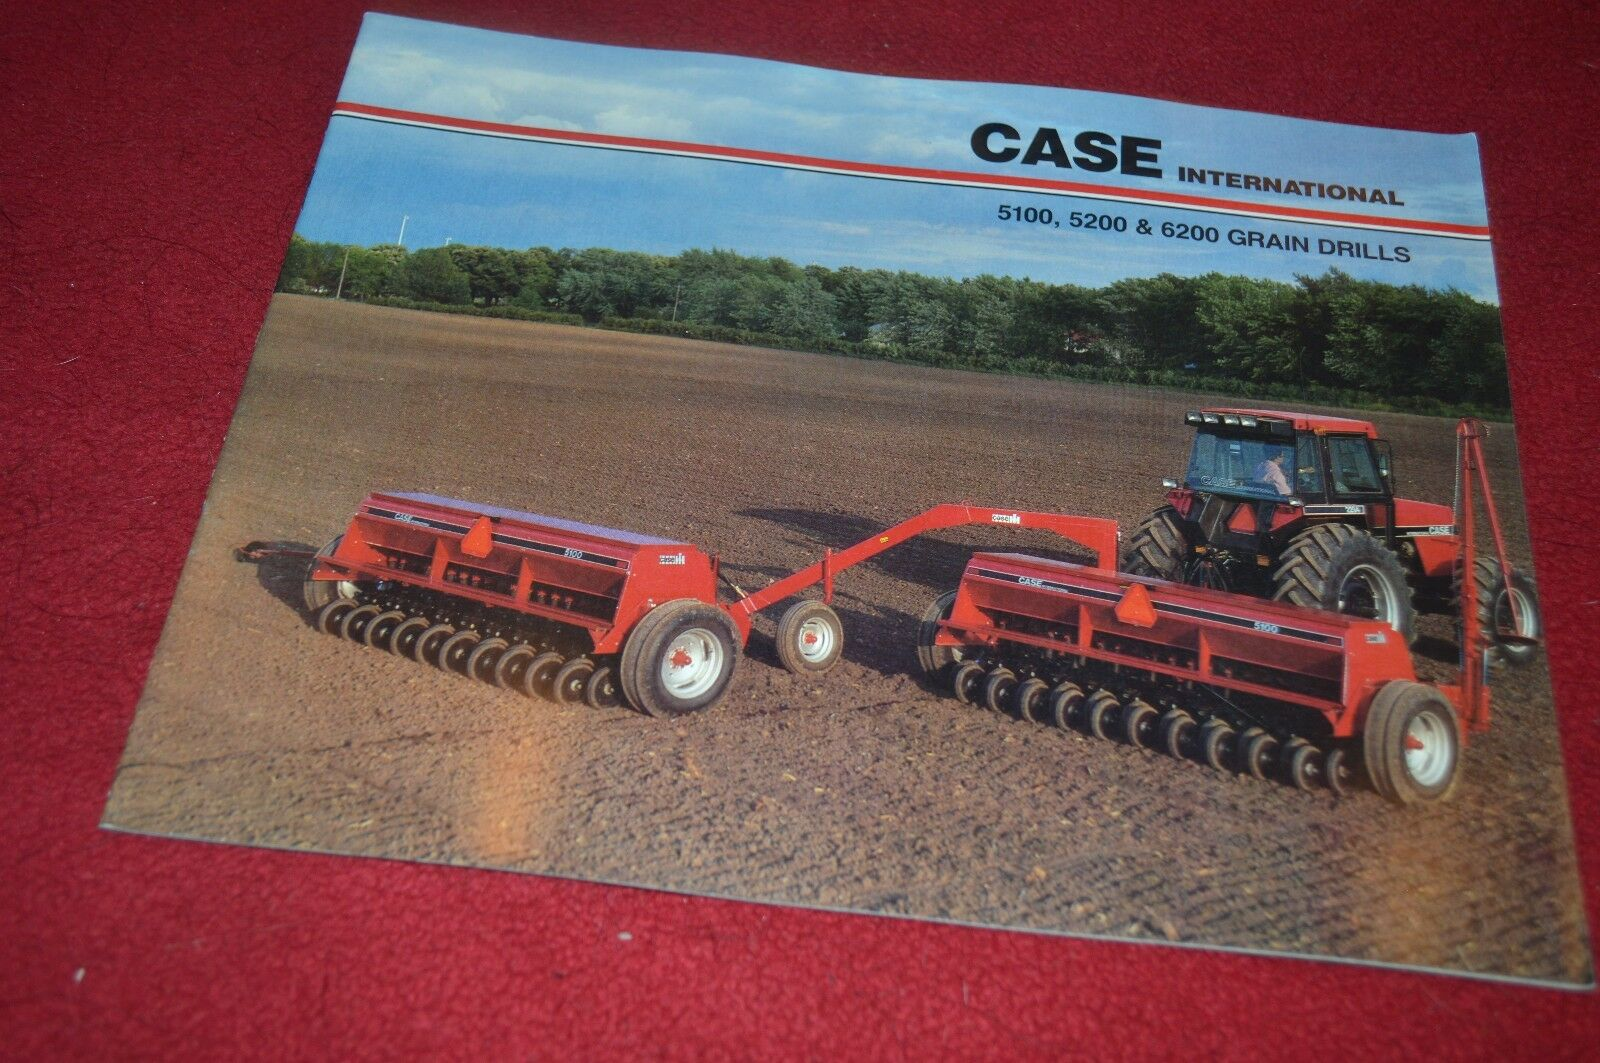 Case International 5100 5200 6200 Grain Drill Dealer Brochure YABE10 1 of  1Only 2 available ...